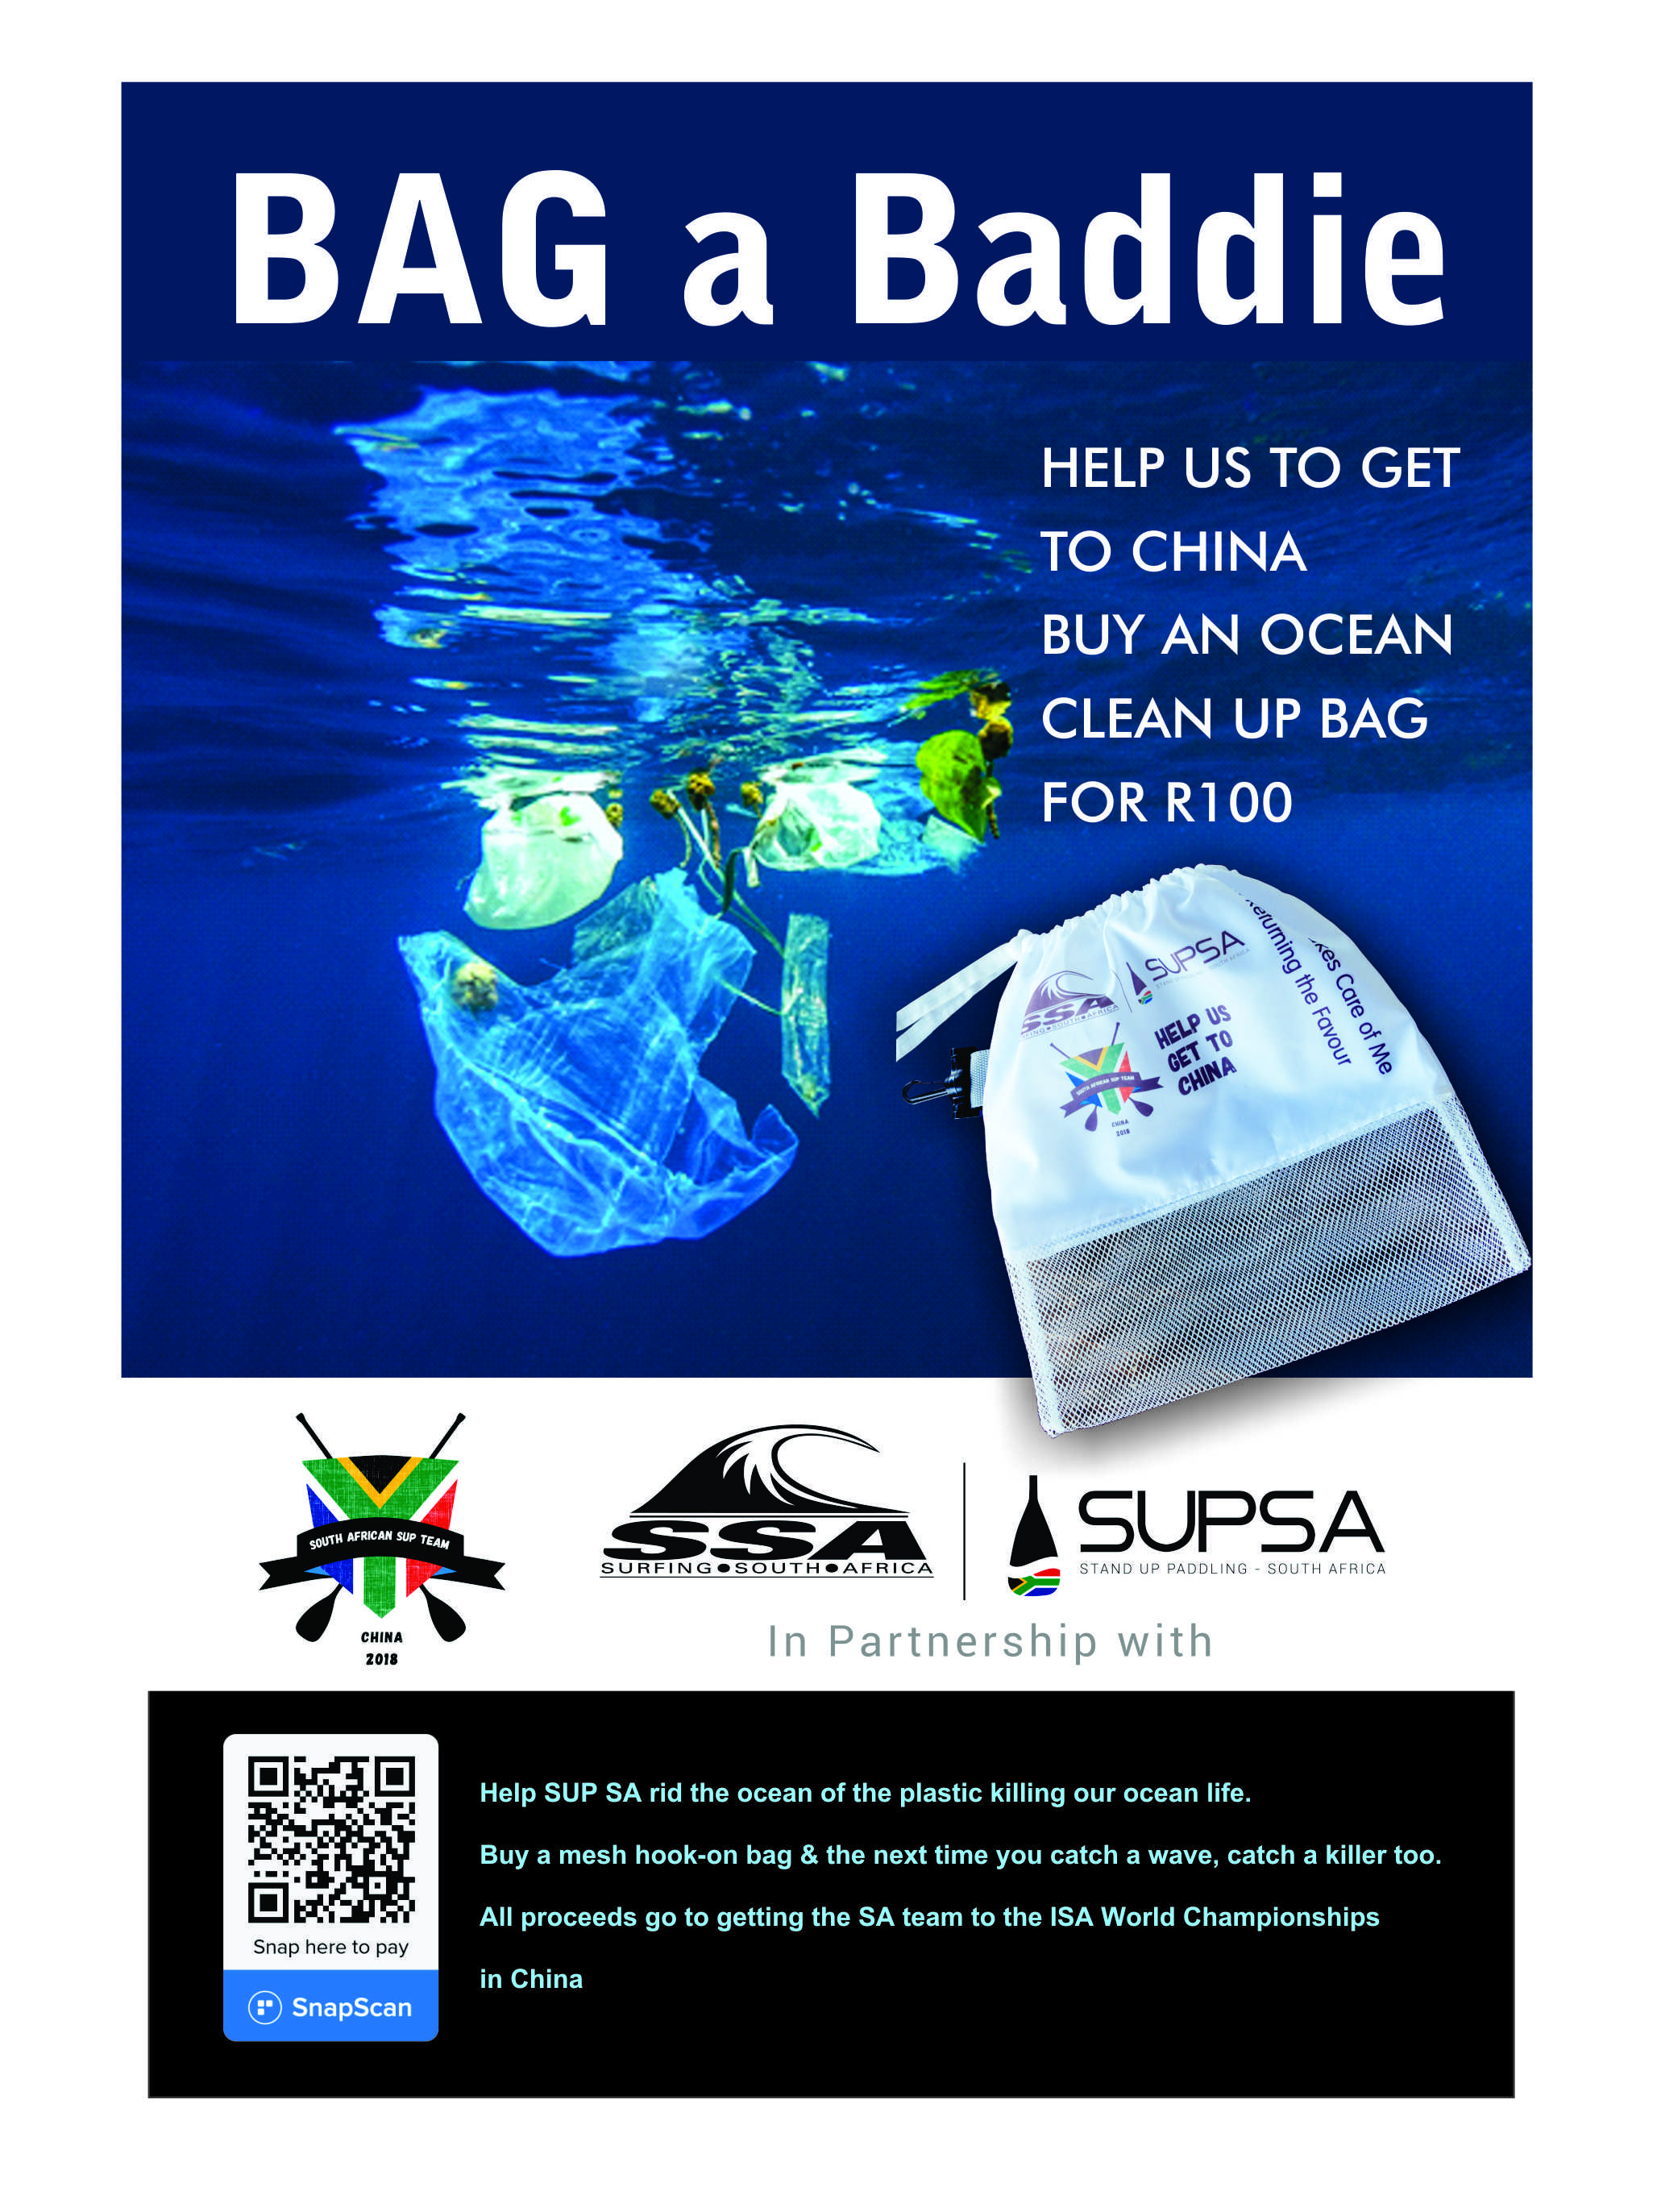 Help Team SA get to China – Bag-A-Baddie